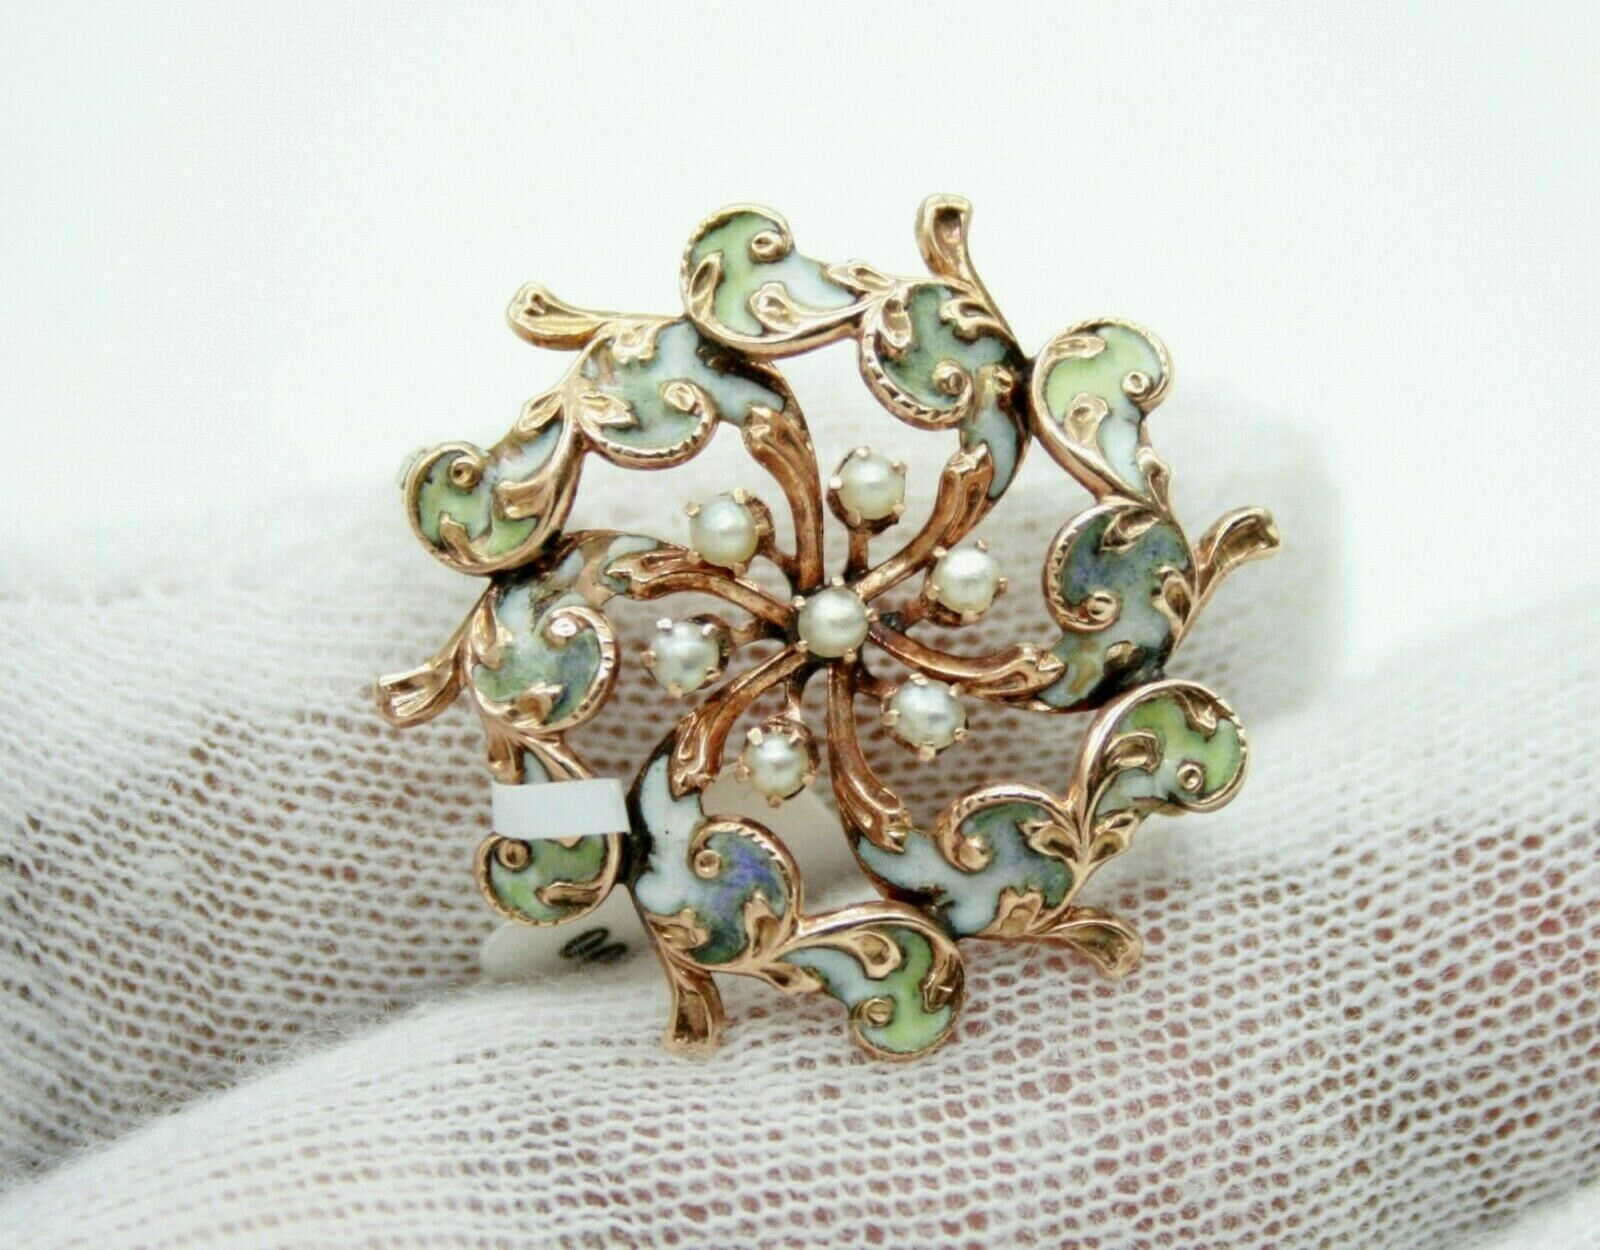 VINTAGE RETRO 14K YELLOW gold ENAMELED SEED PEARLS PIN BROOCH